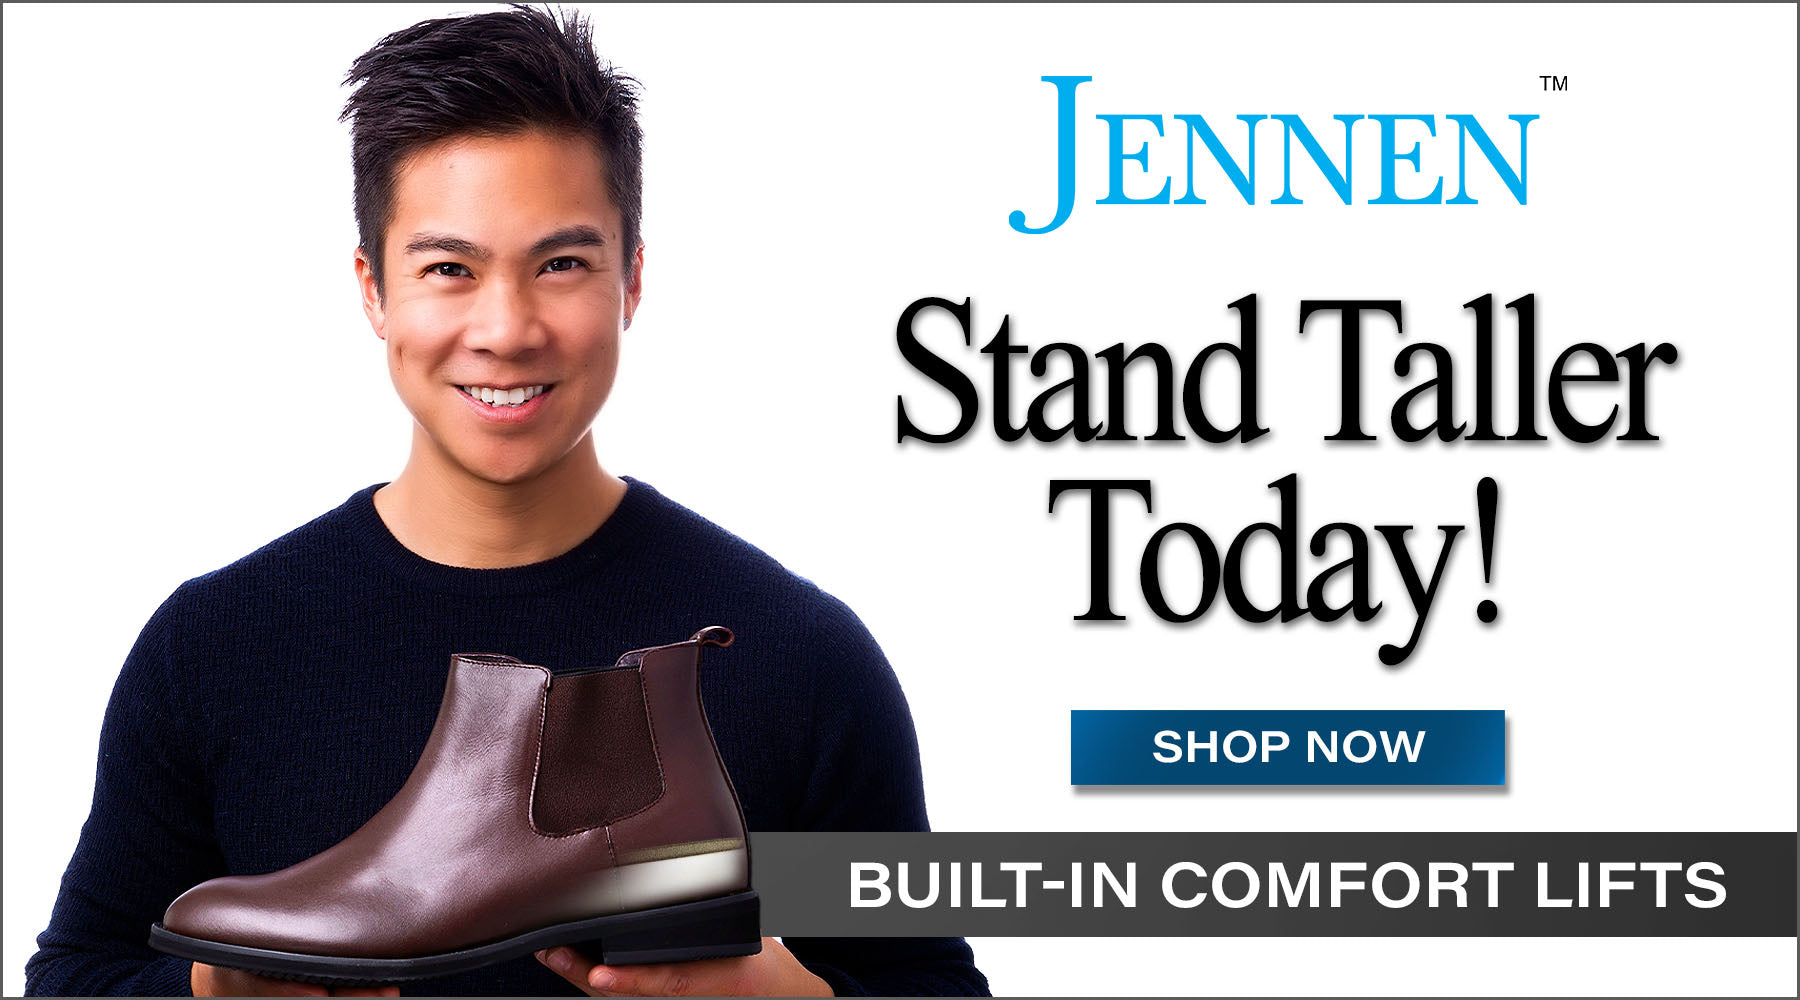 JENNEN Shoes | Shoes with Built-In Comfort Lifts